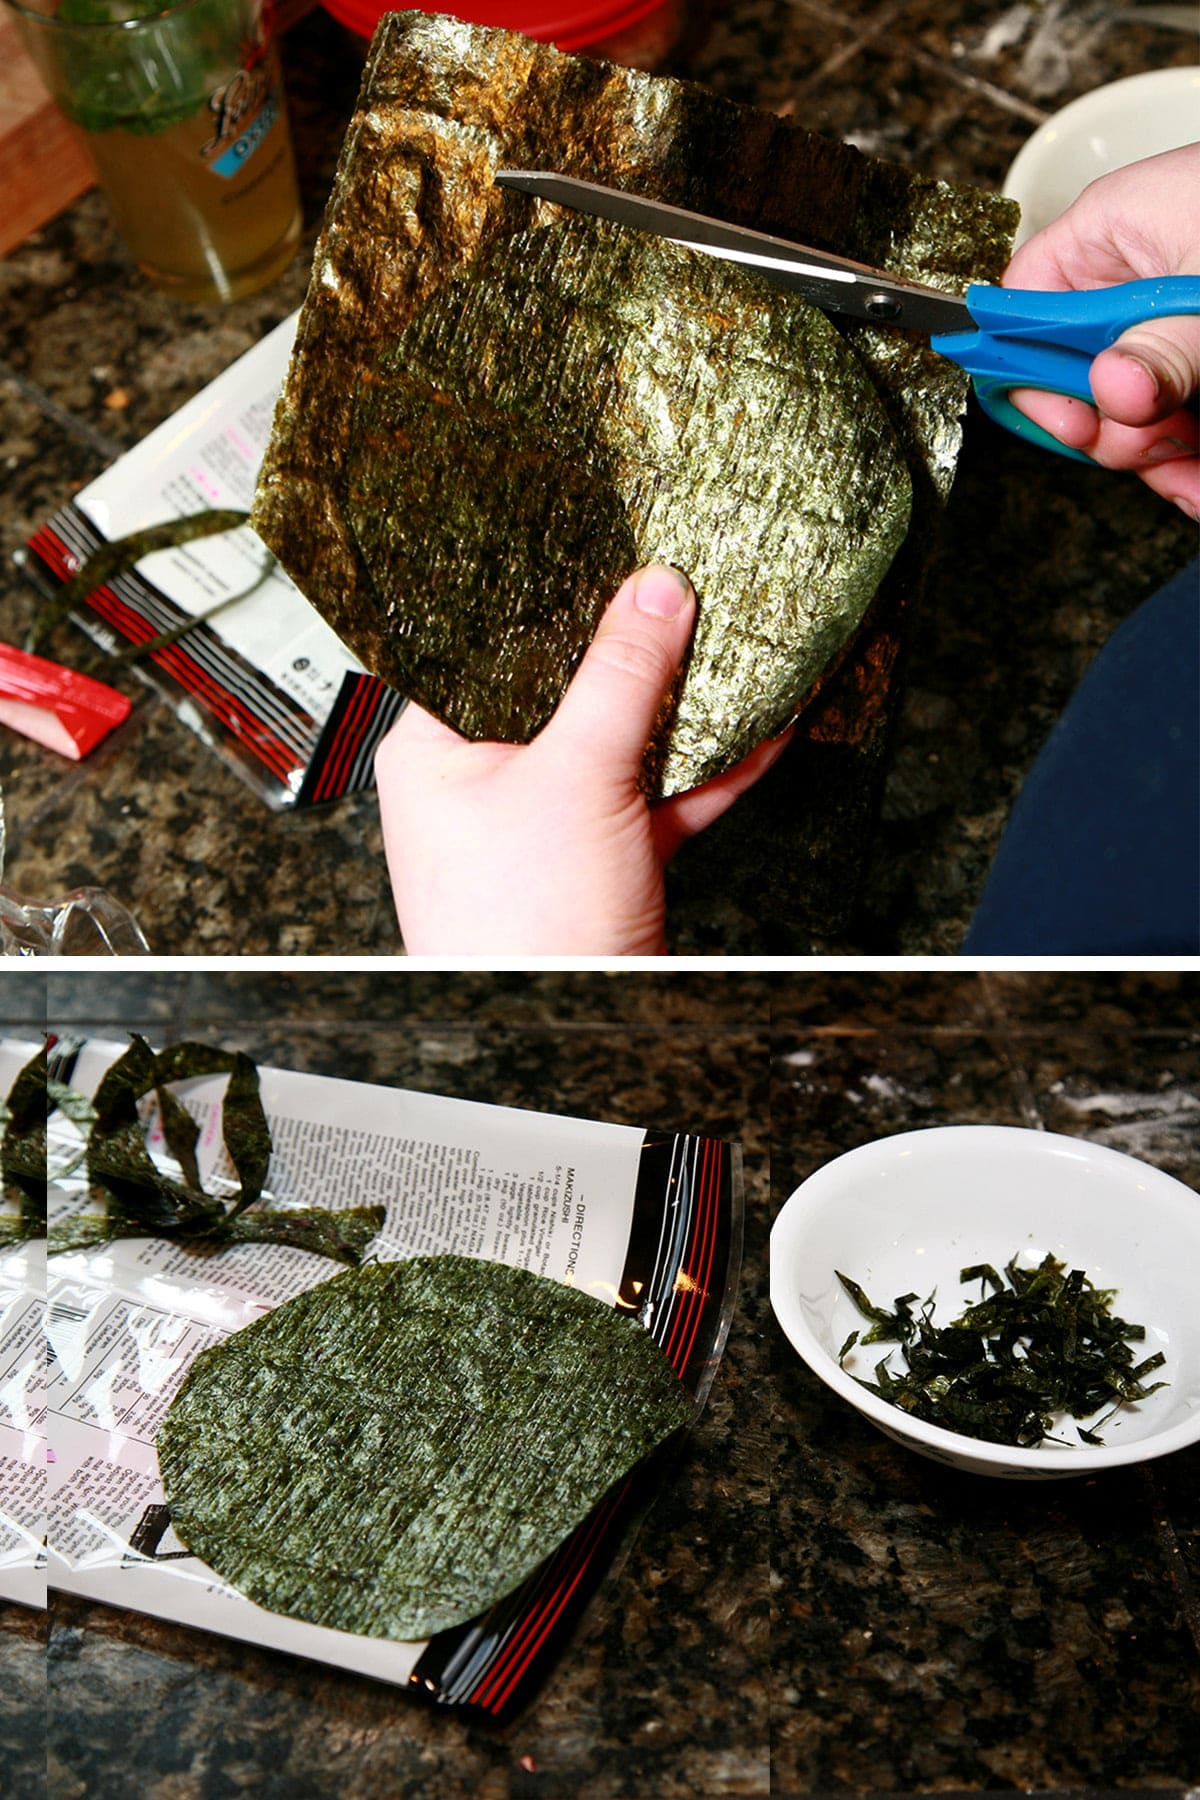 A two part image showing sheets of nori being cut into circles.